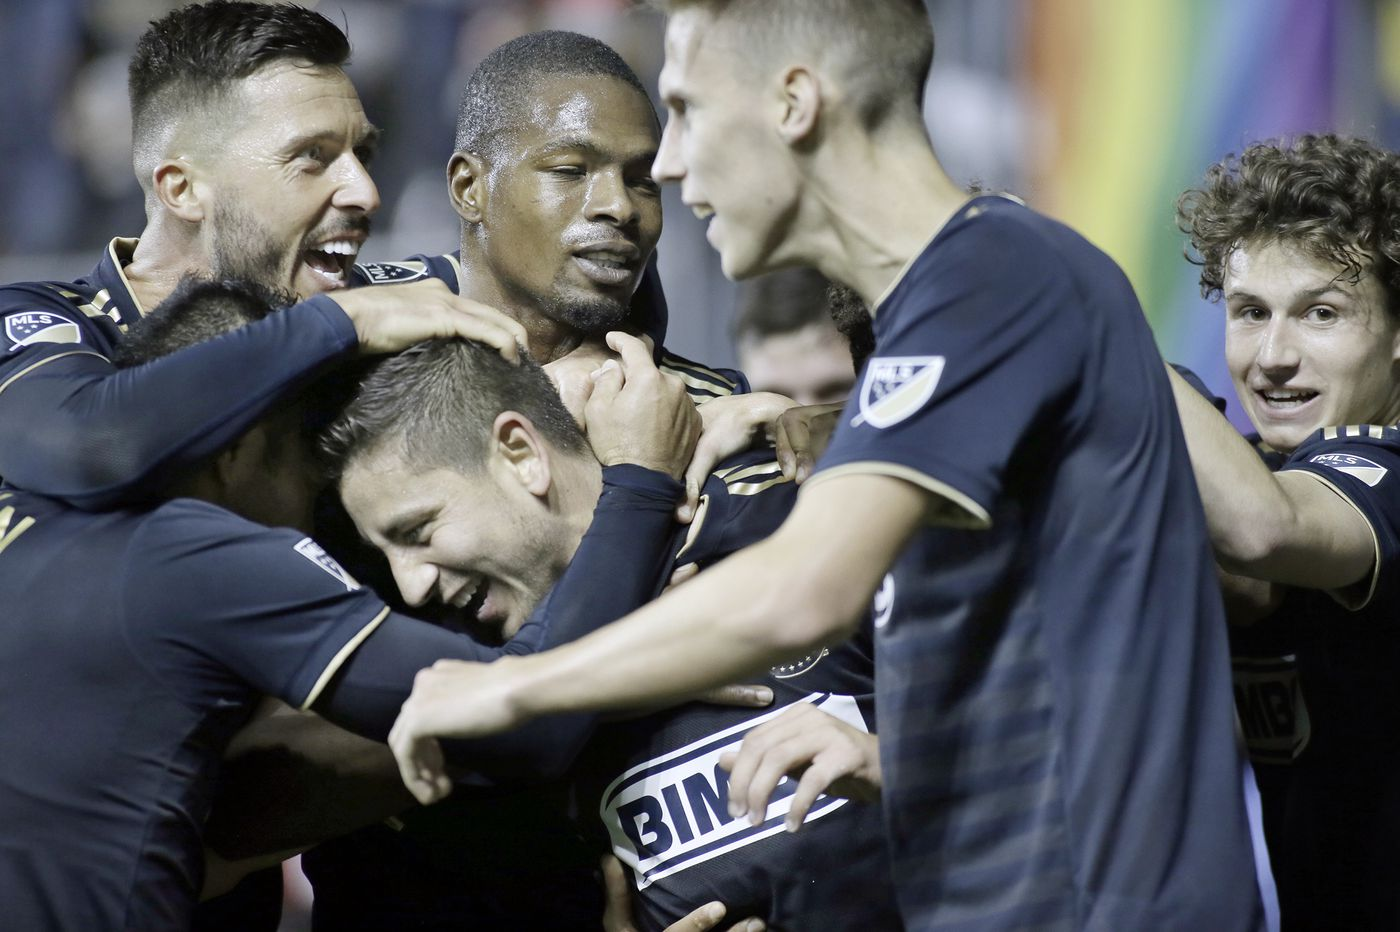 Union's Alejandro Bedoya shows again why he's the captain with big game in win over FC Dallas